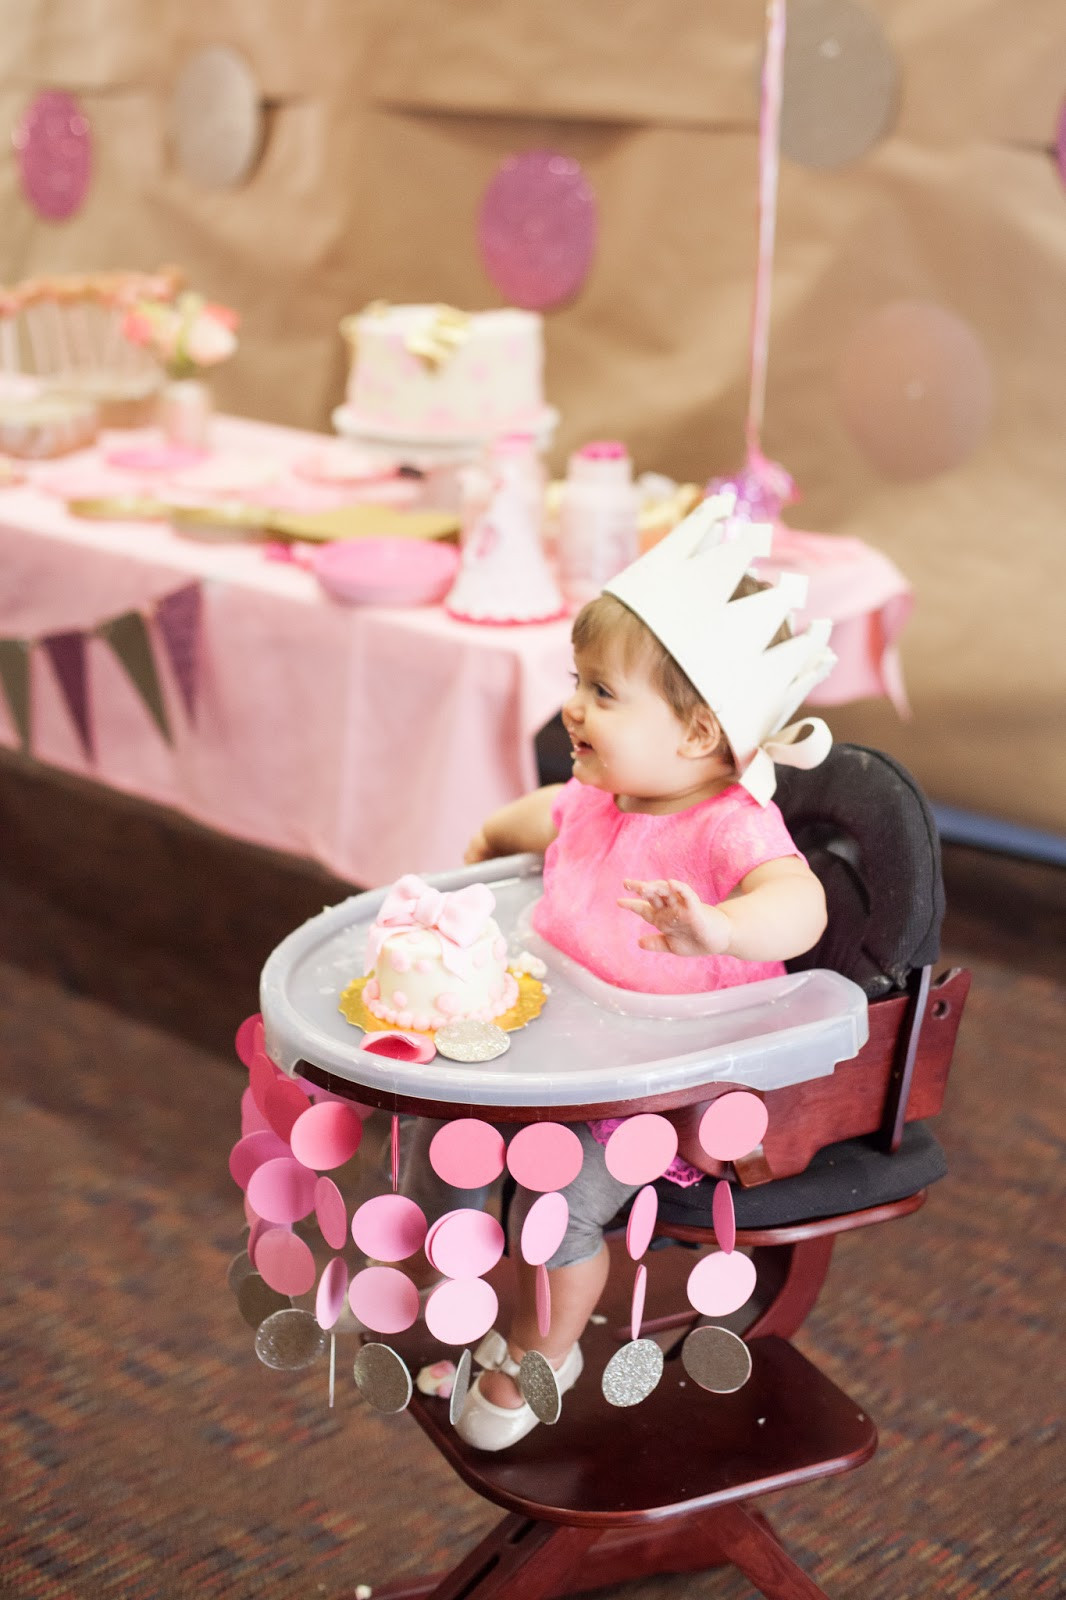 Best ideas about First Birthday Party Decor . Save or Pin Nat your average girl 1st birthday party decor Now.